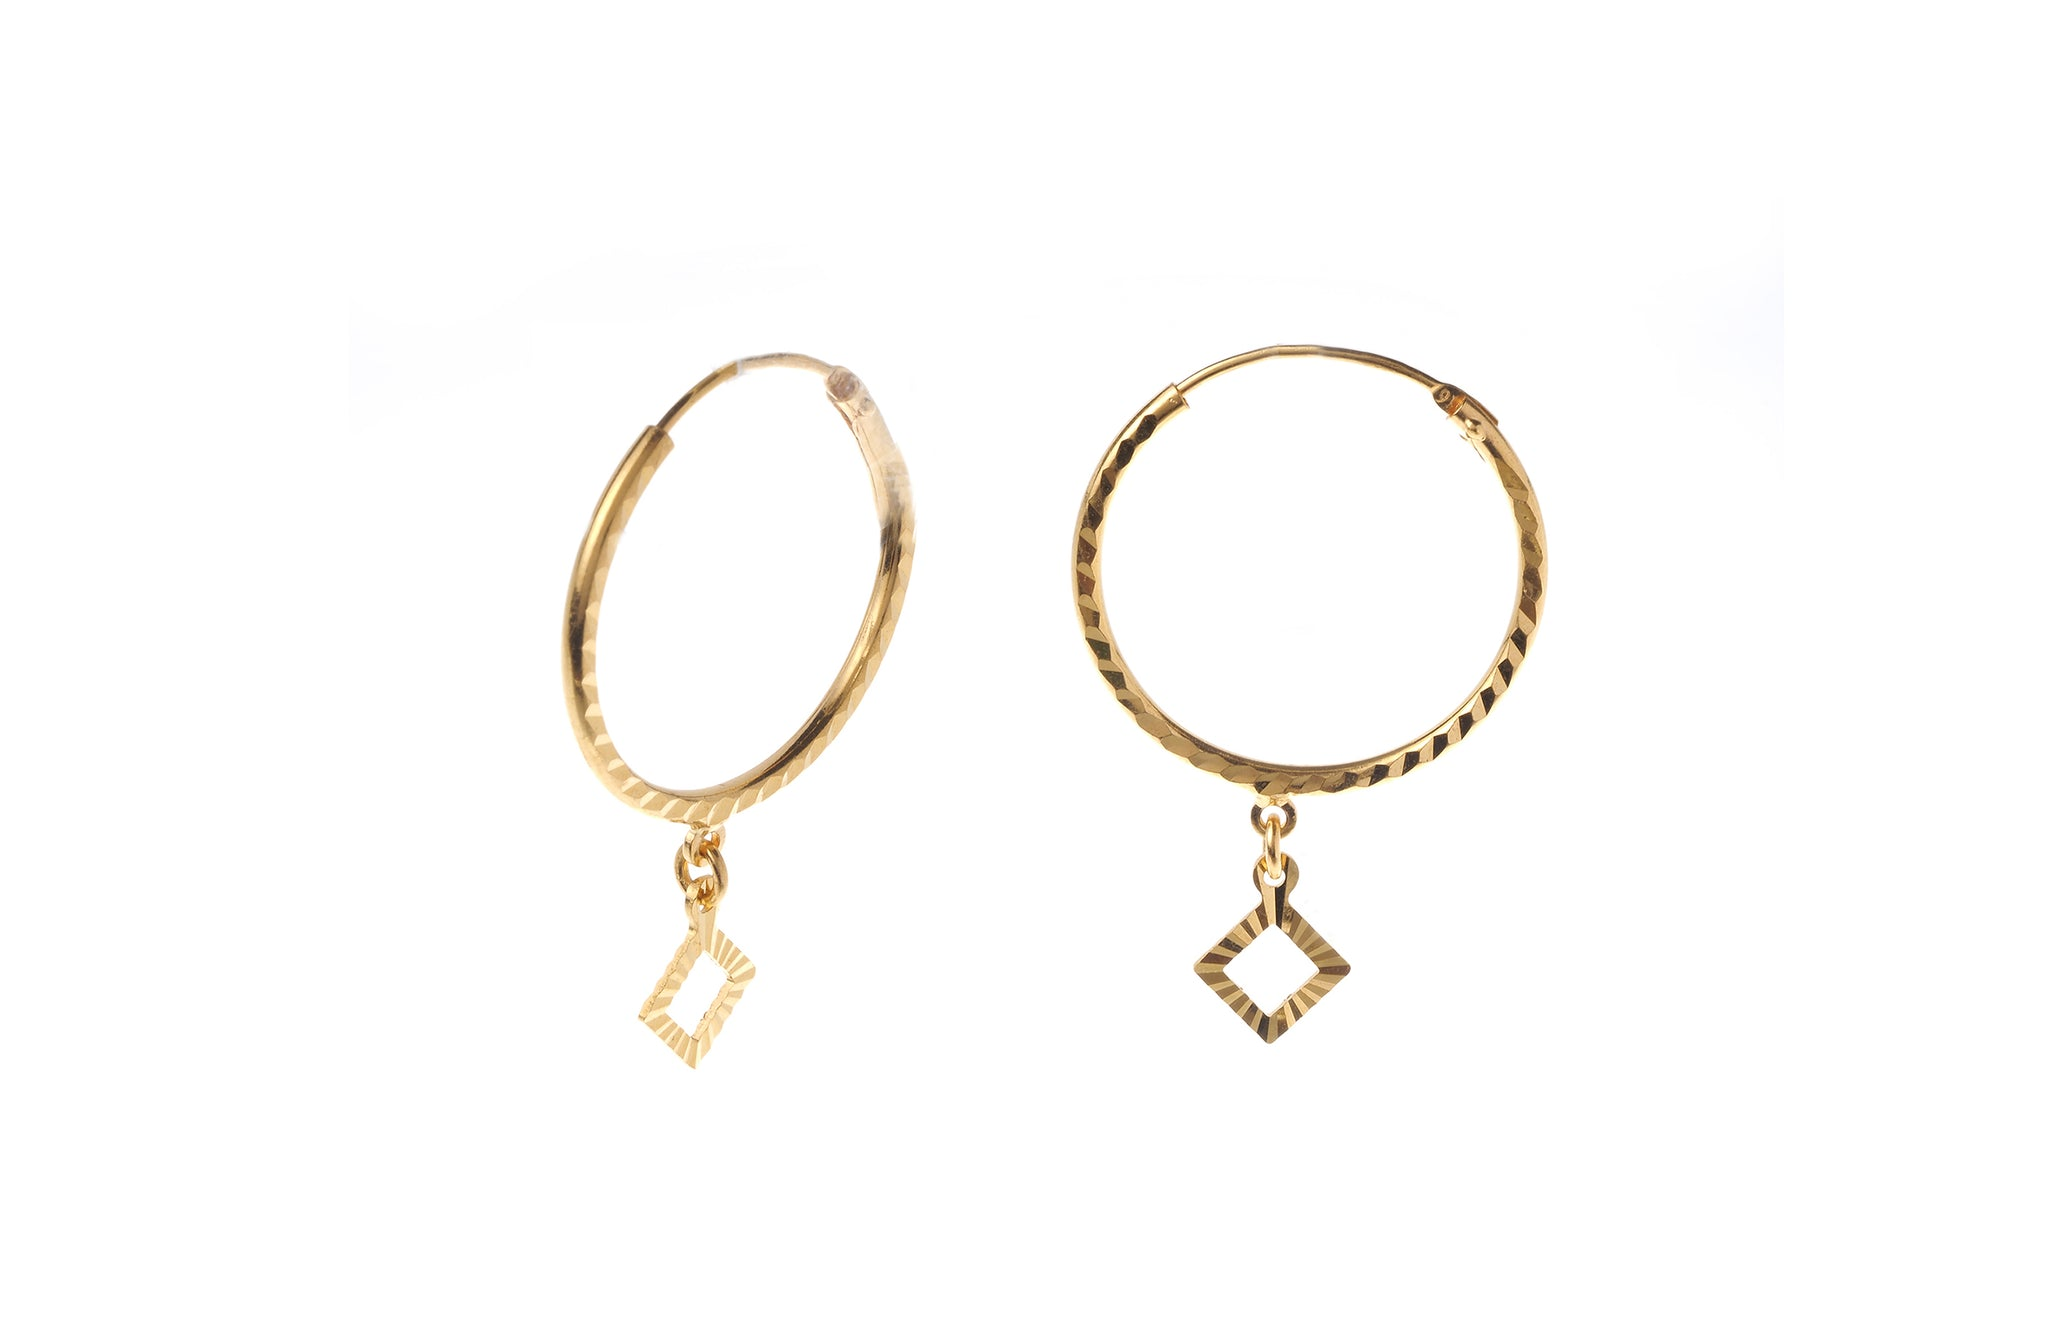 22ct Gold Hoop Earrings with Diamond Shaped Drops (2.3g) (E-7208)